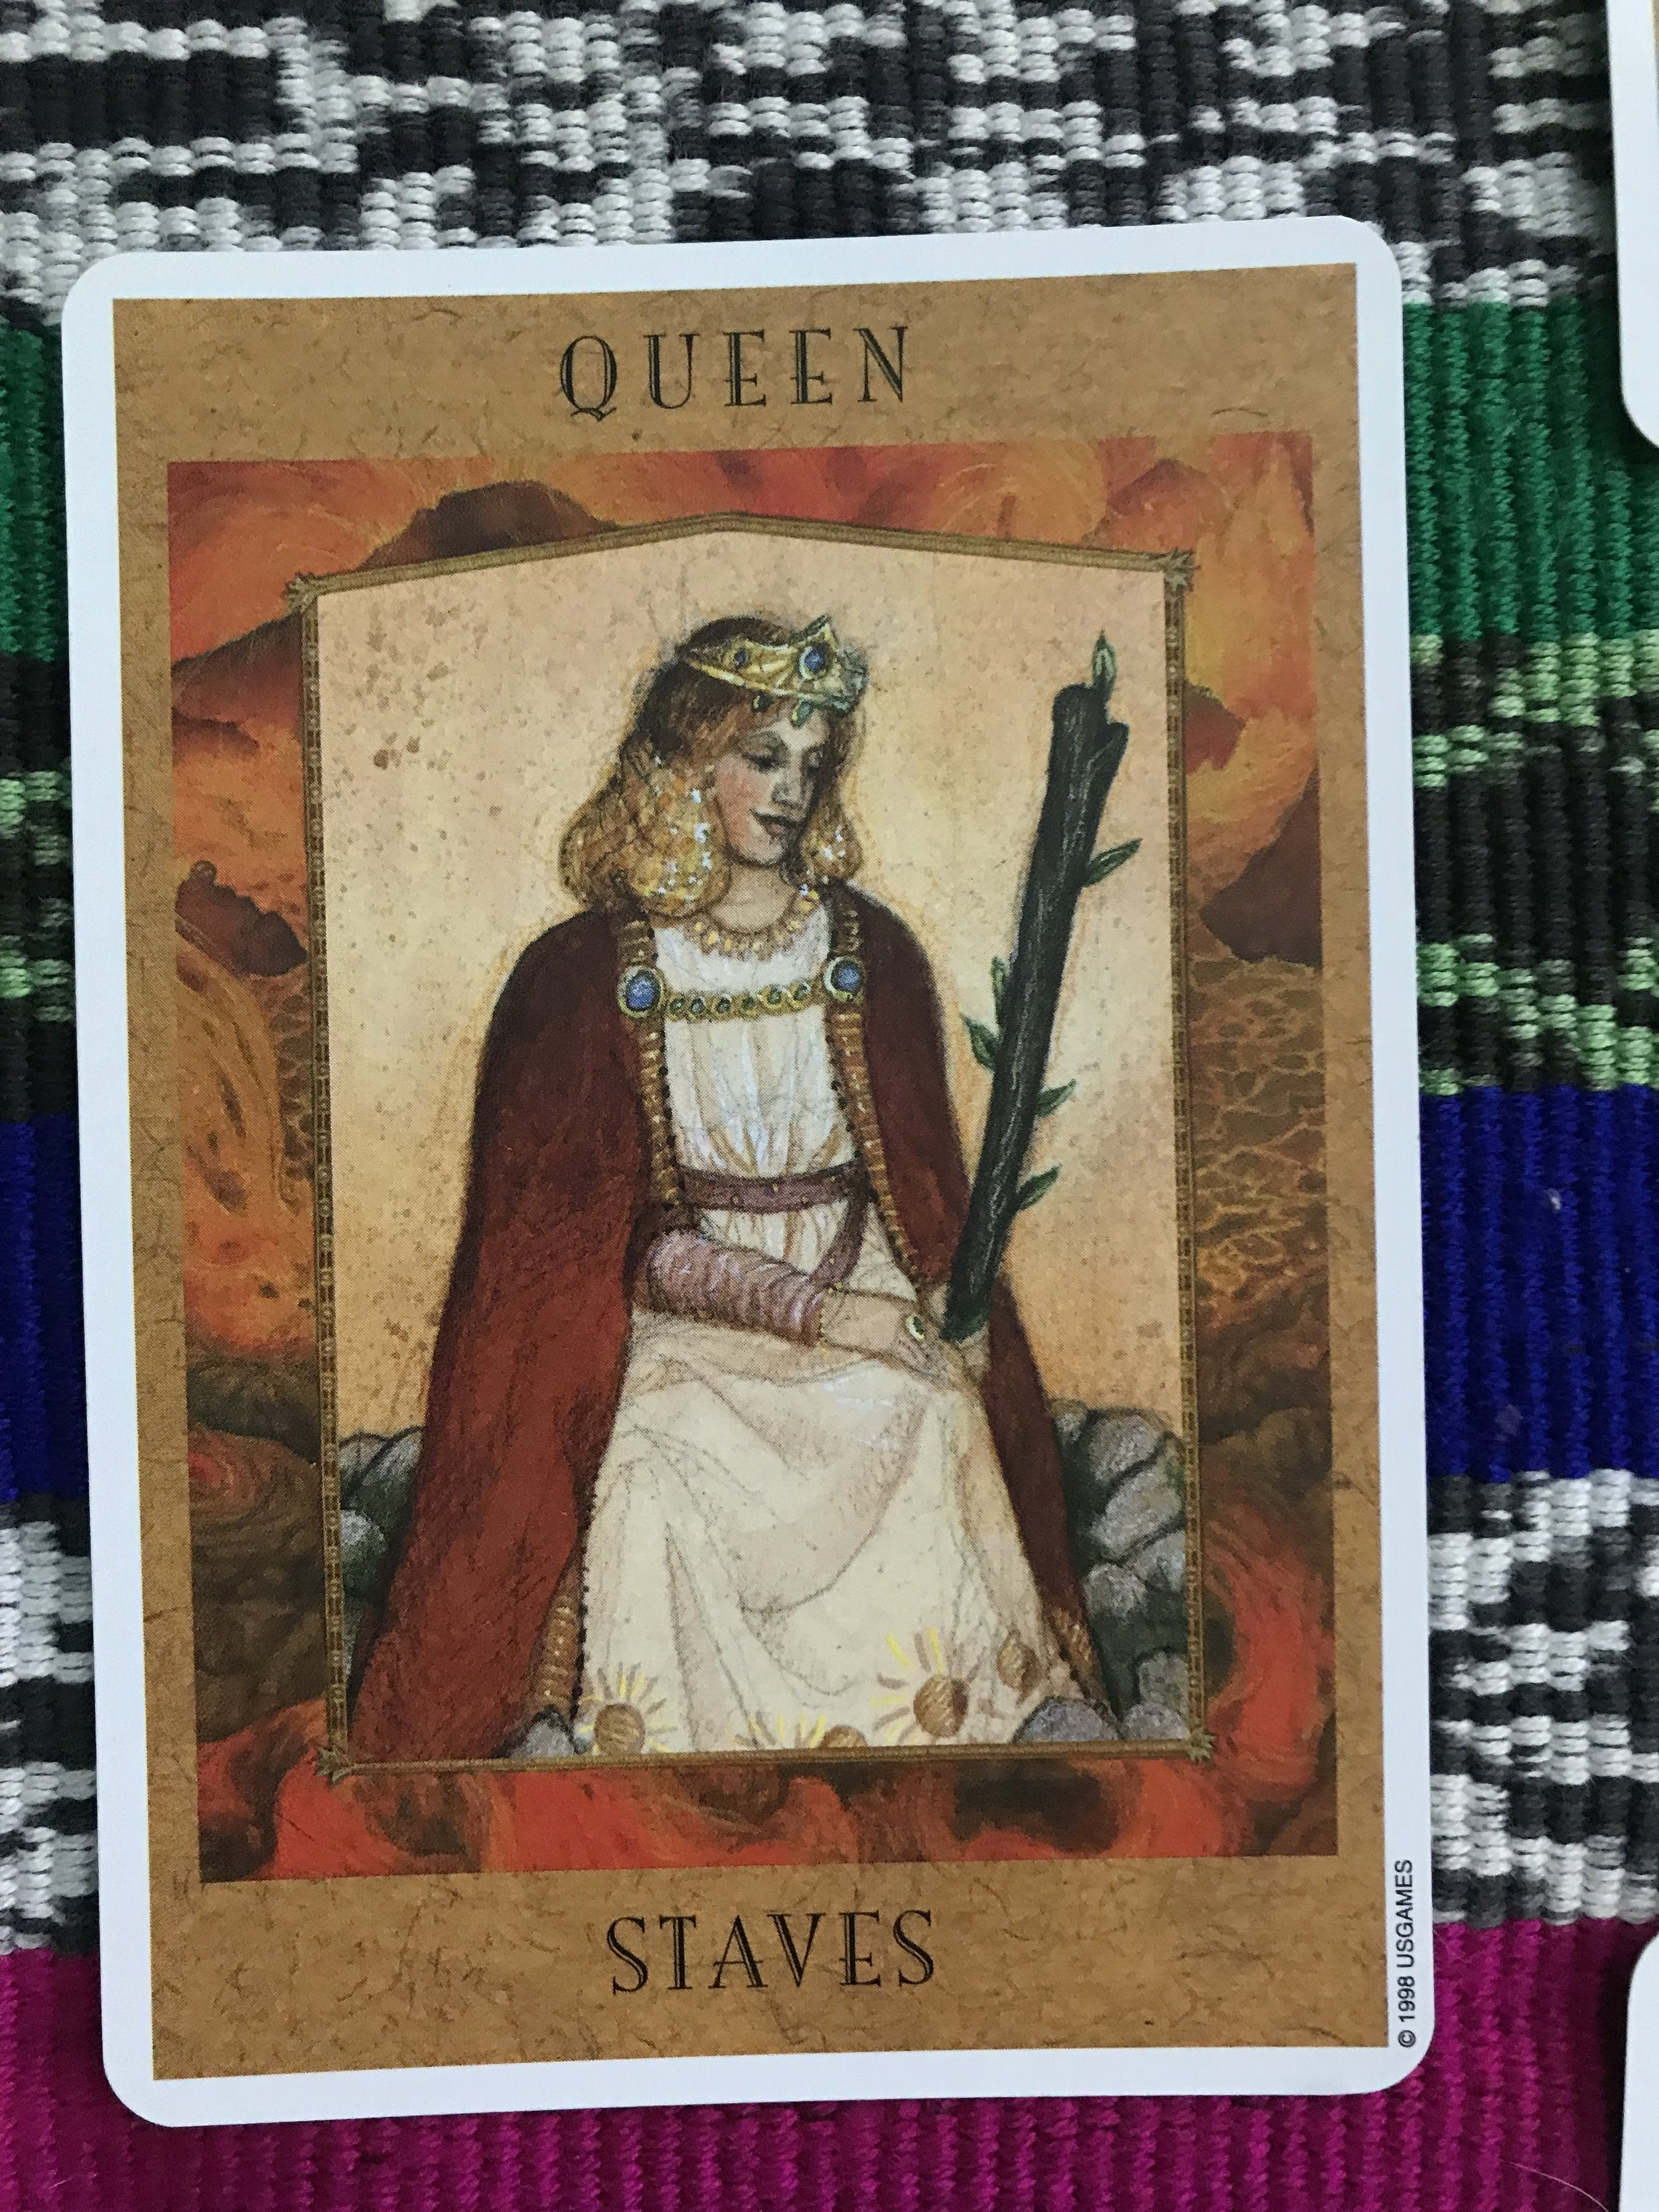 Queen of Staves from The Goddess Tarot